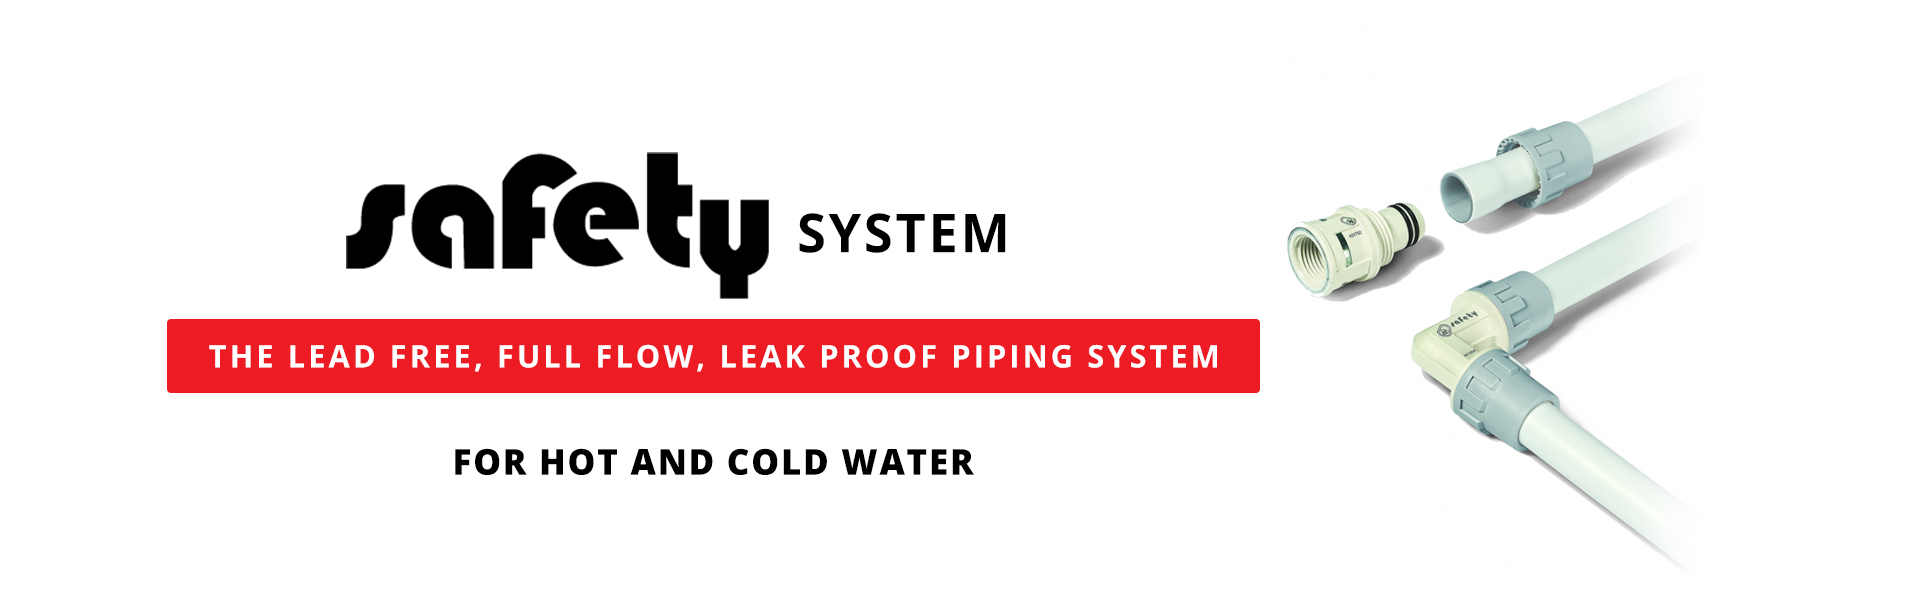 Piping System Sydney   Lead Free, Full Flow, Leak Proof Pipe